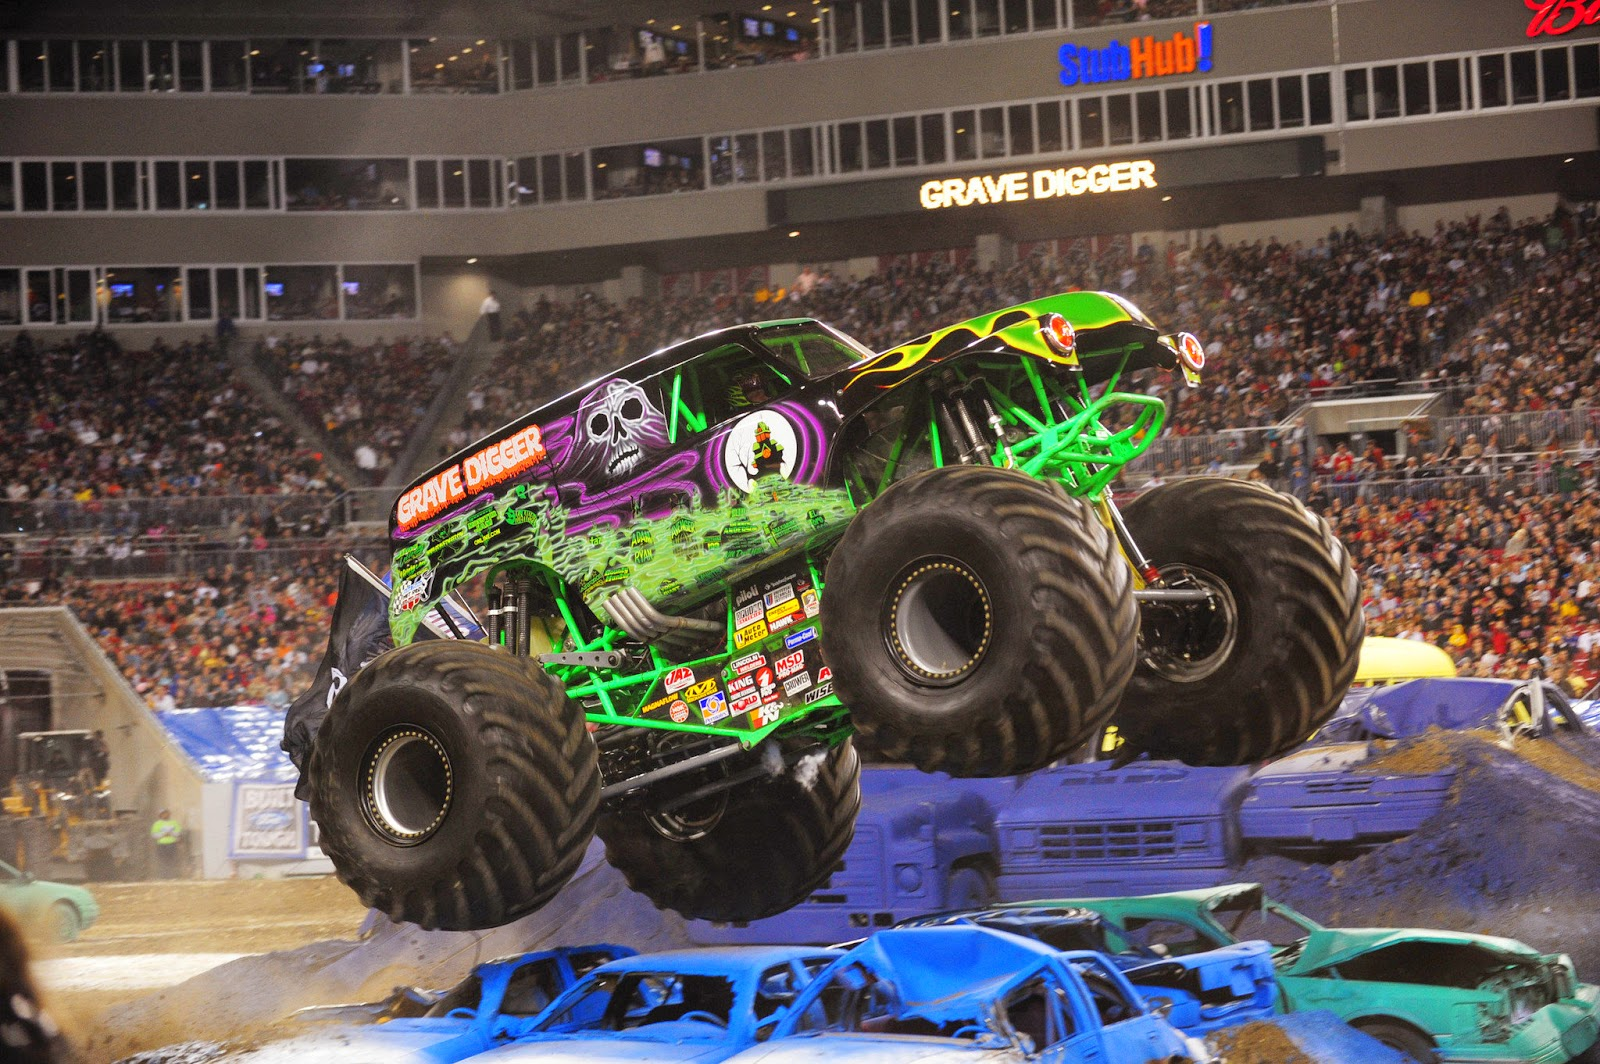 Grave Digger in all his glory.